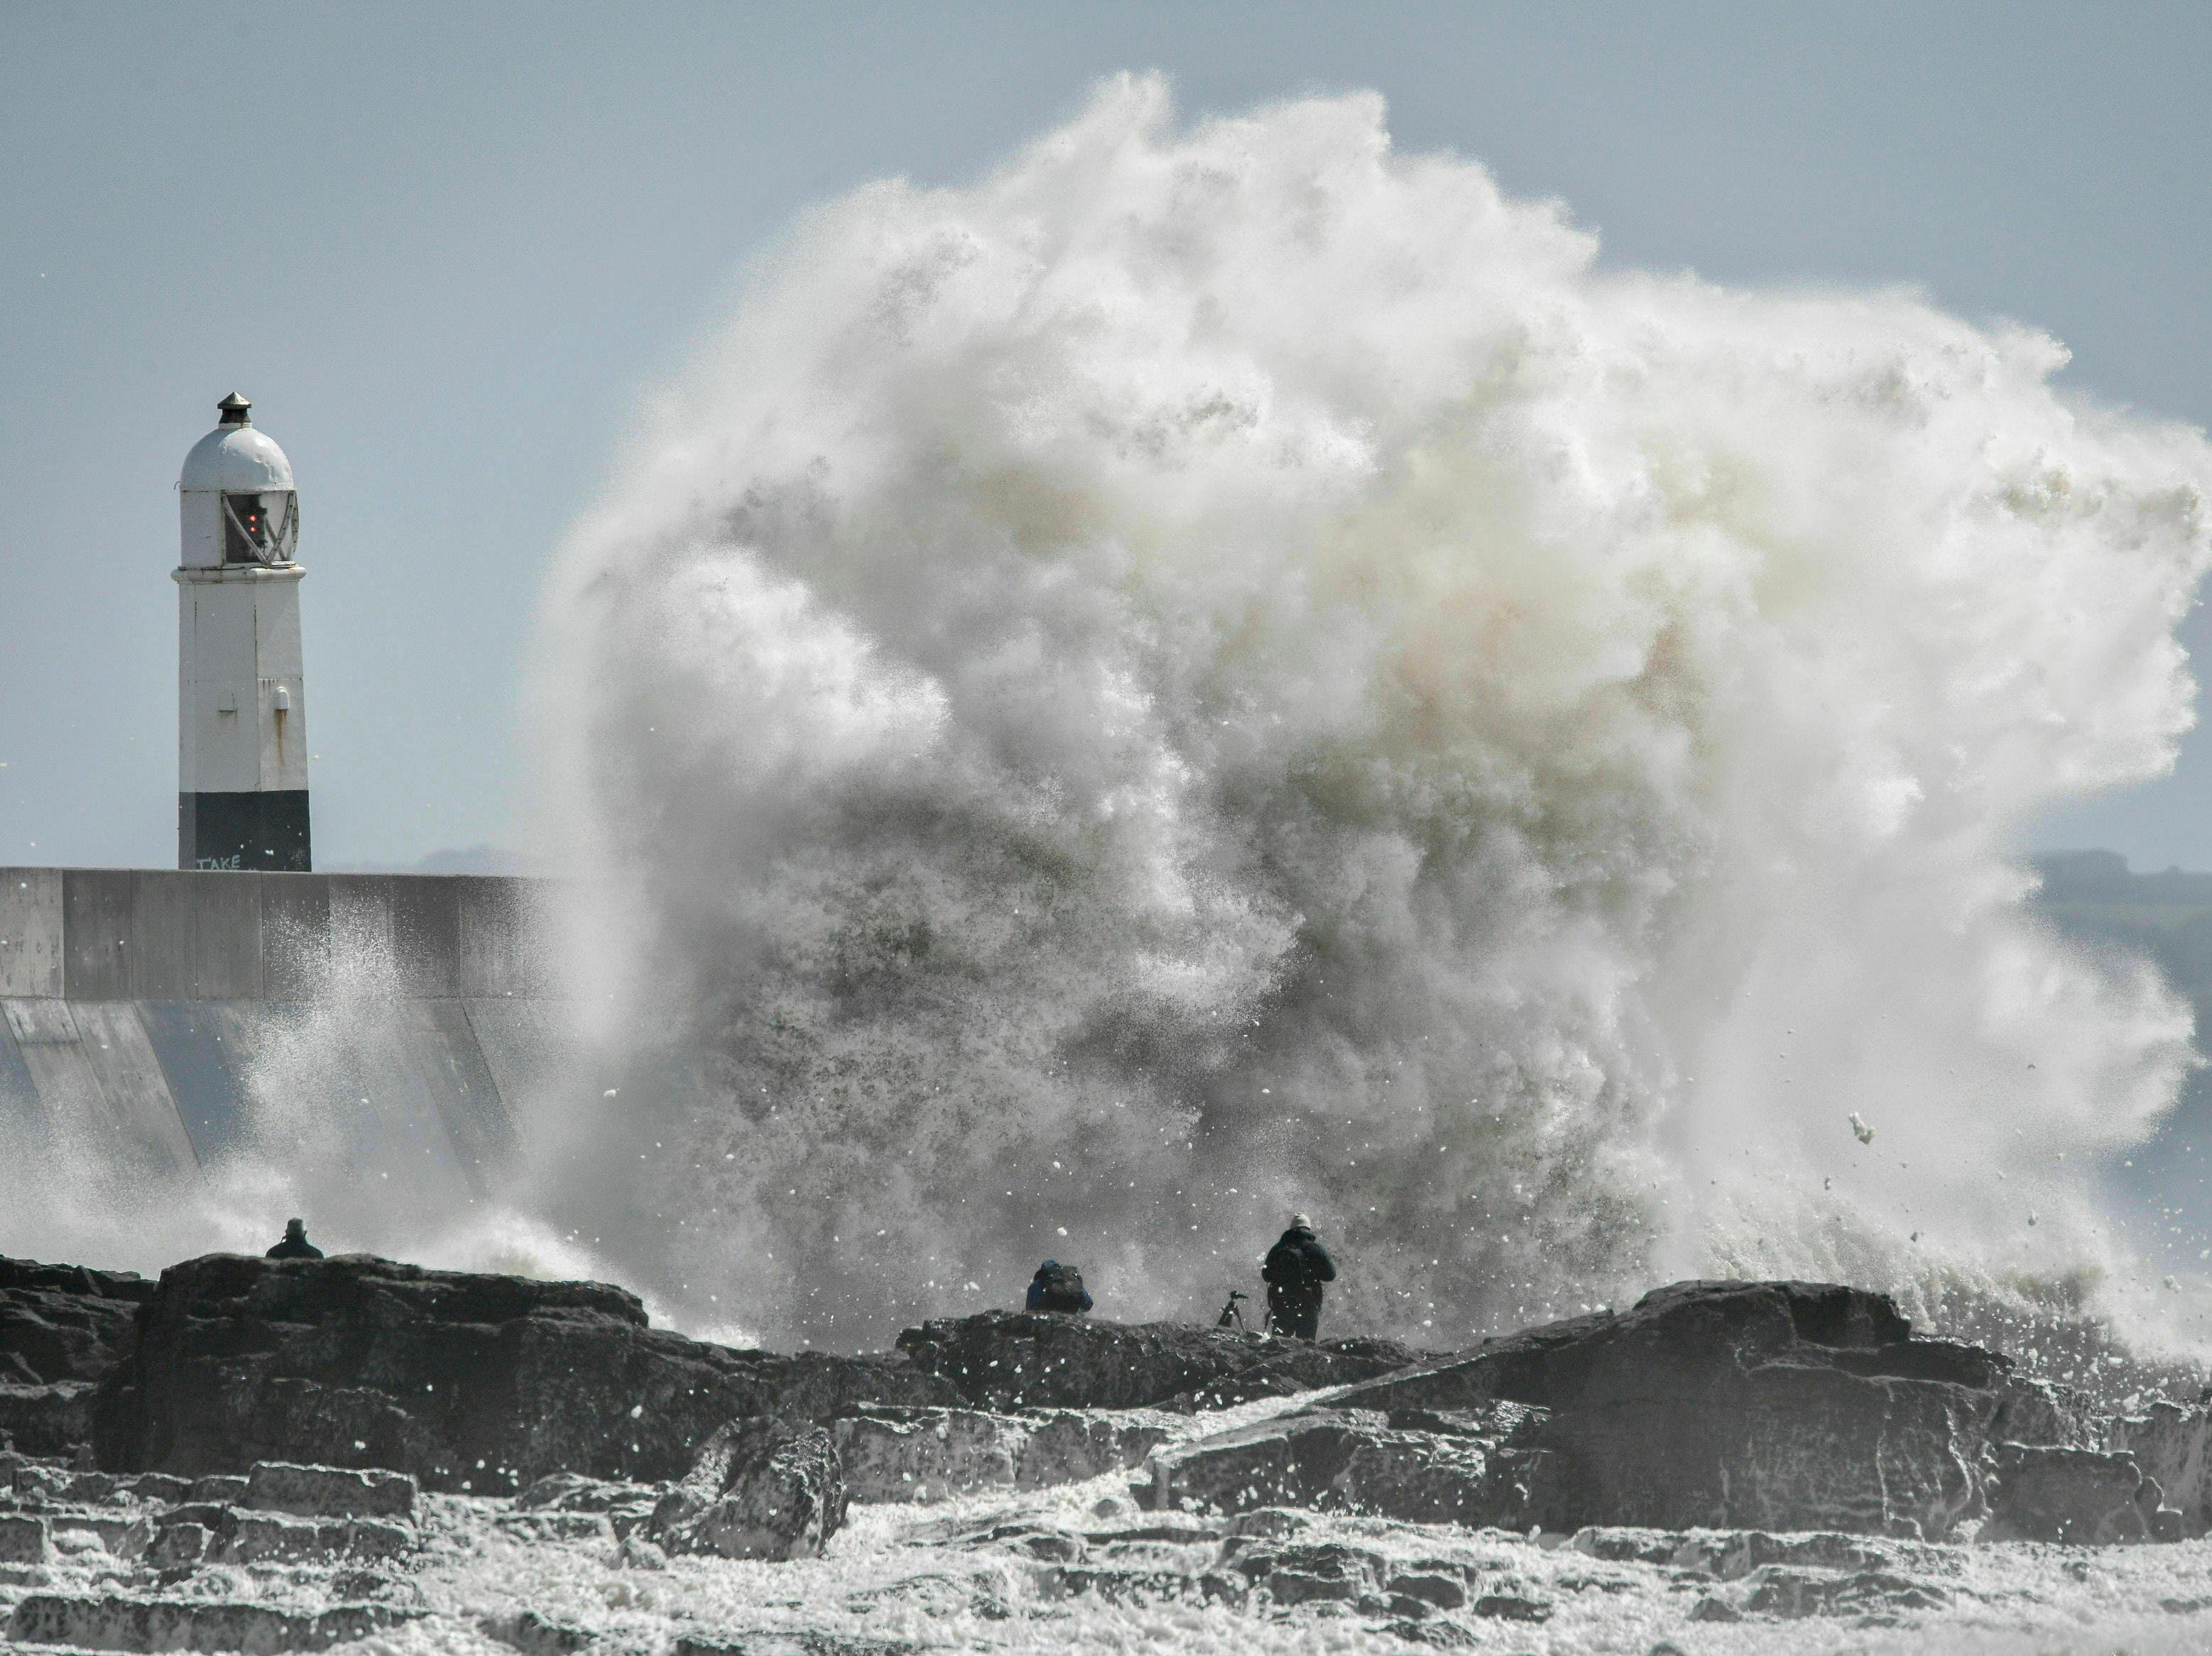 People watch huge waves crash against the shore at Porthcawl, Wales, where Storm Hannah is creating extremely strong gusts of wind, on Saturday, April 27, 2019.